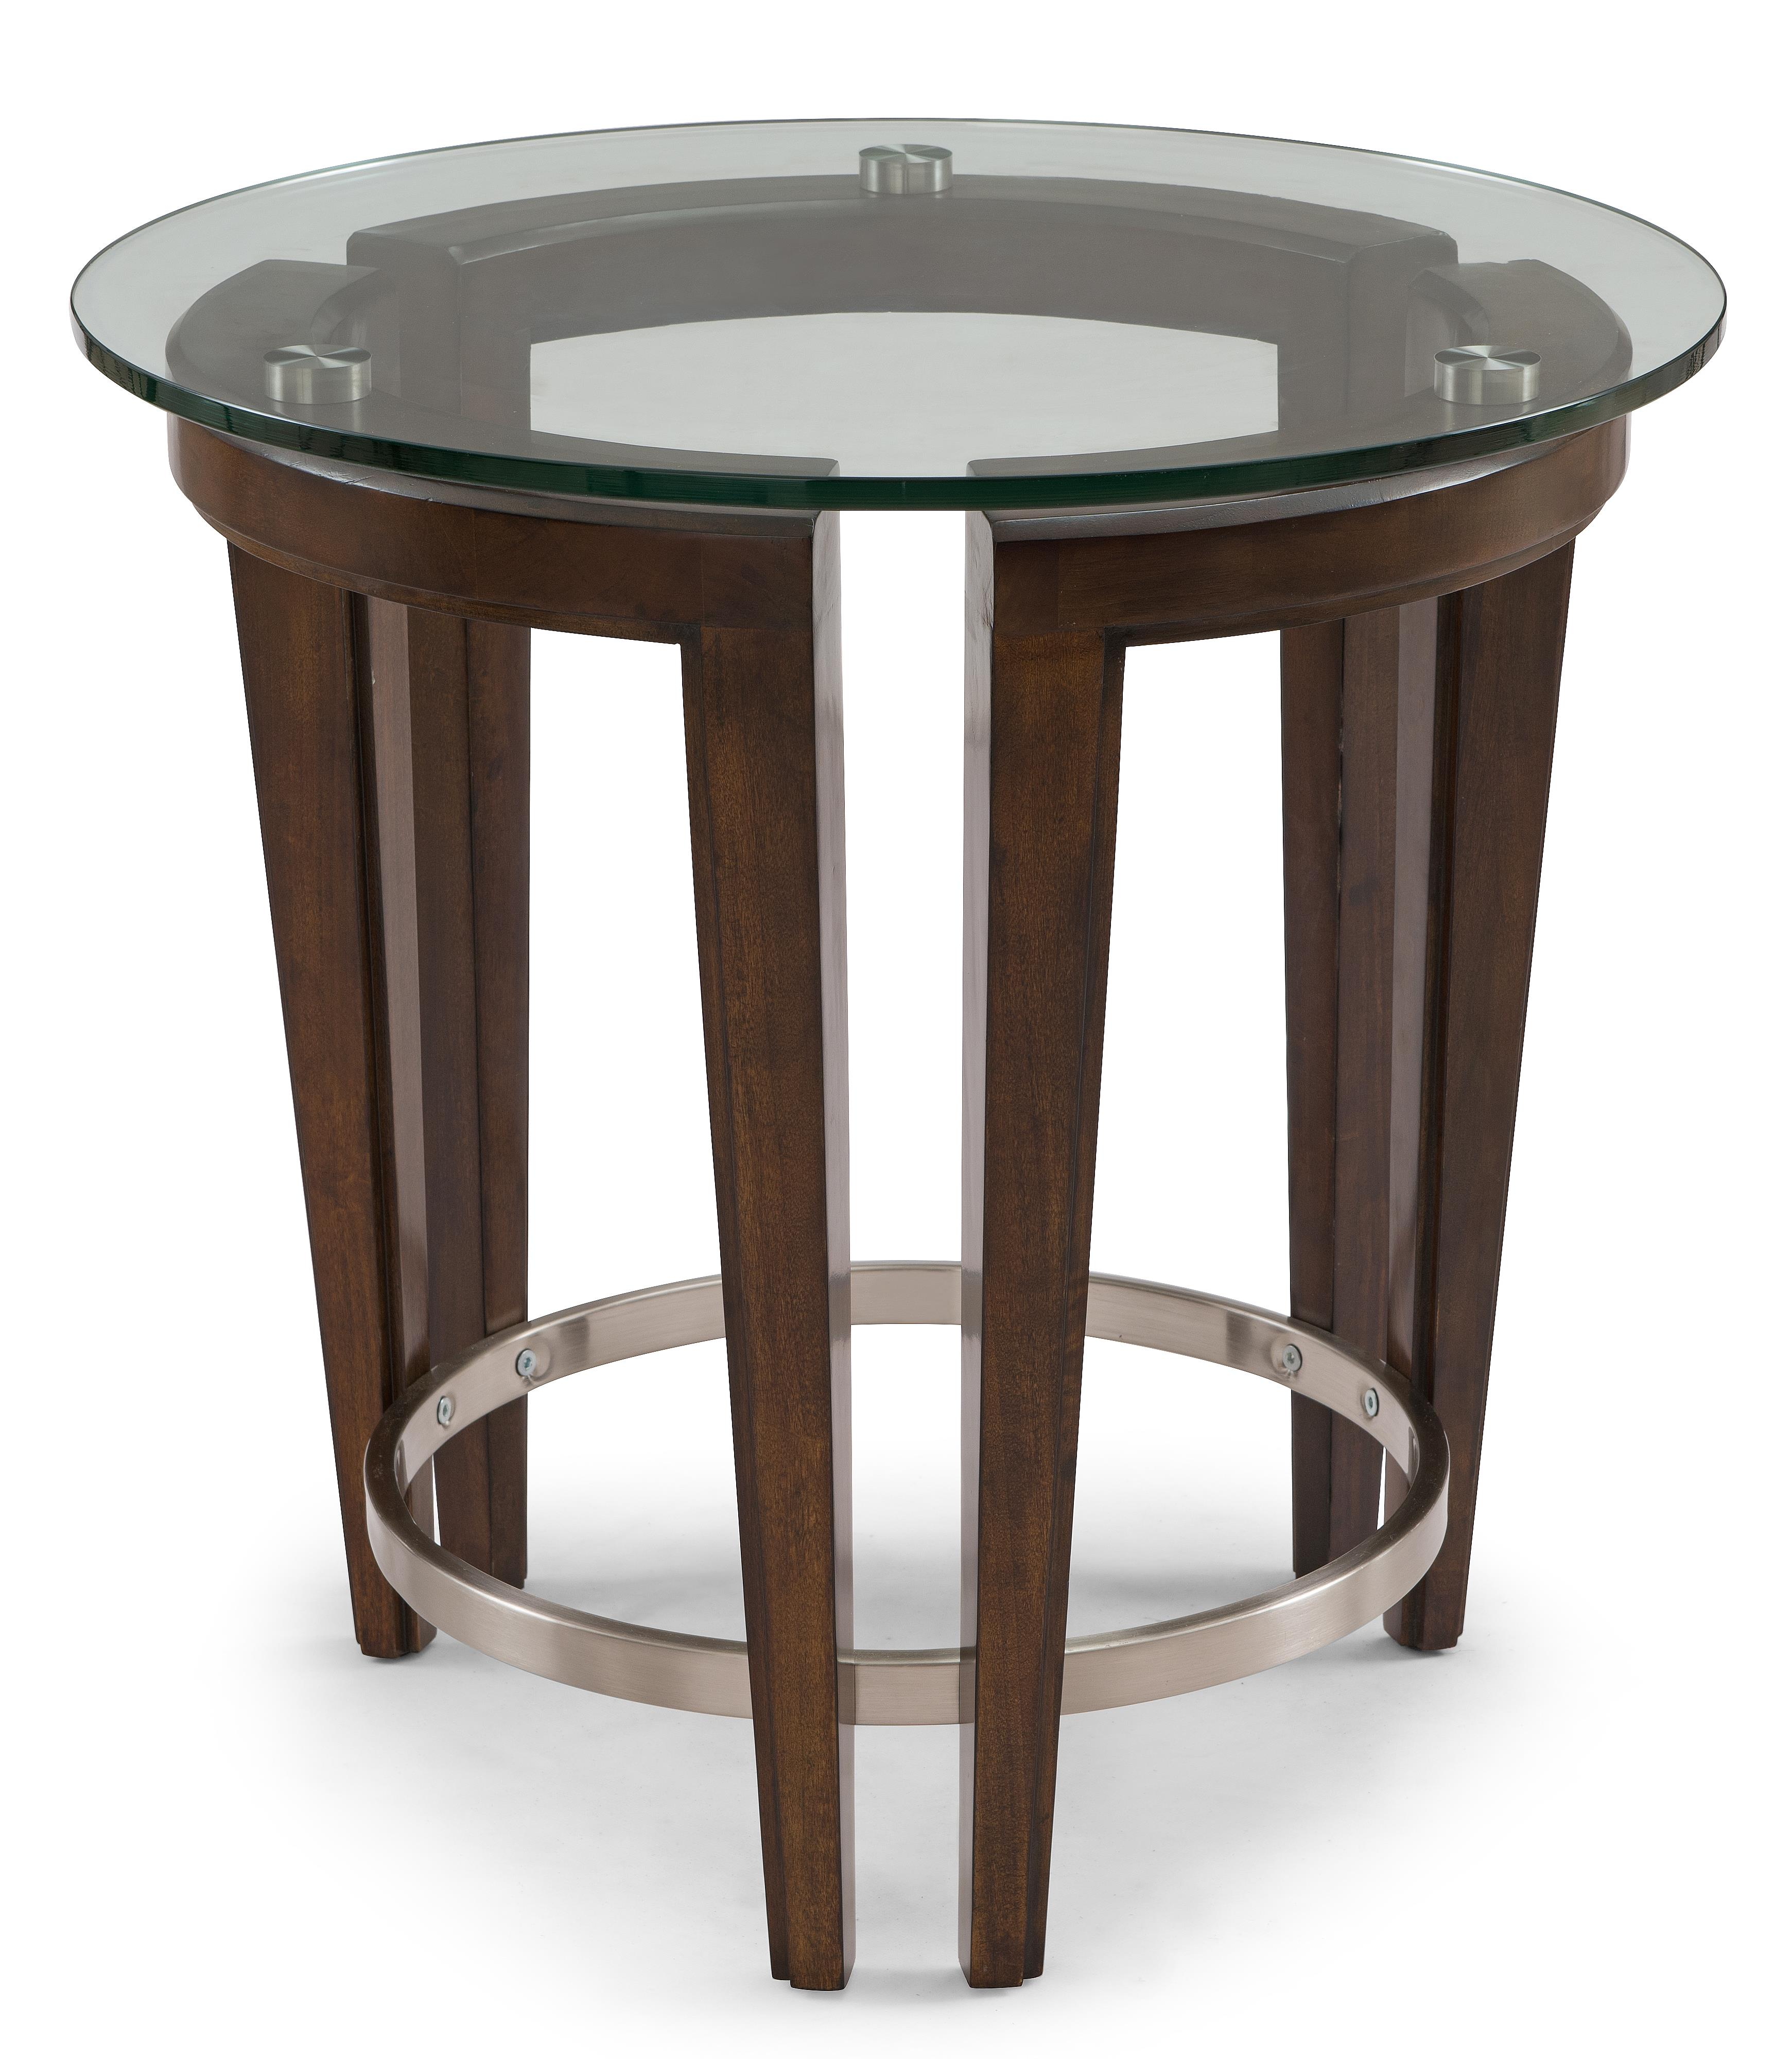 Carmen Round End Table by Magnussen Home at Baer's Furniture